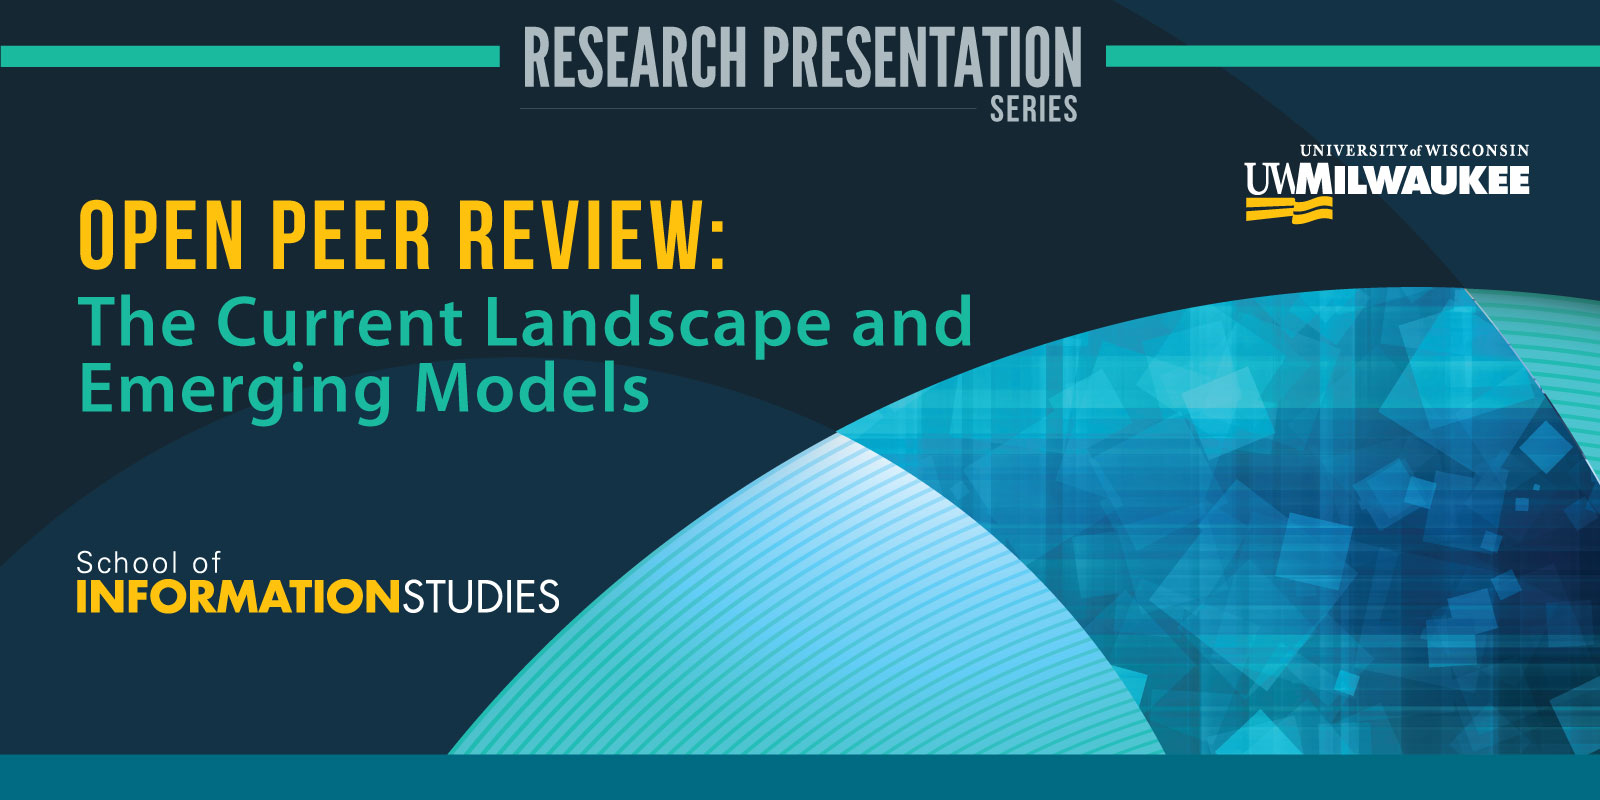 Details For Event 17064 – Open Peer Review: The Current Landscape and Emerging Models